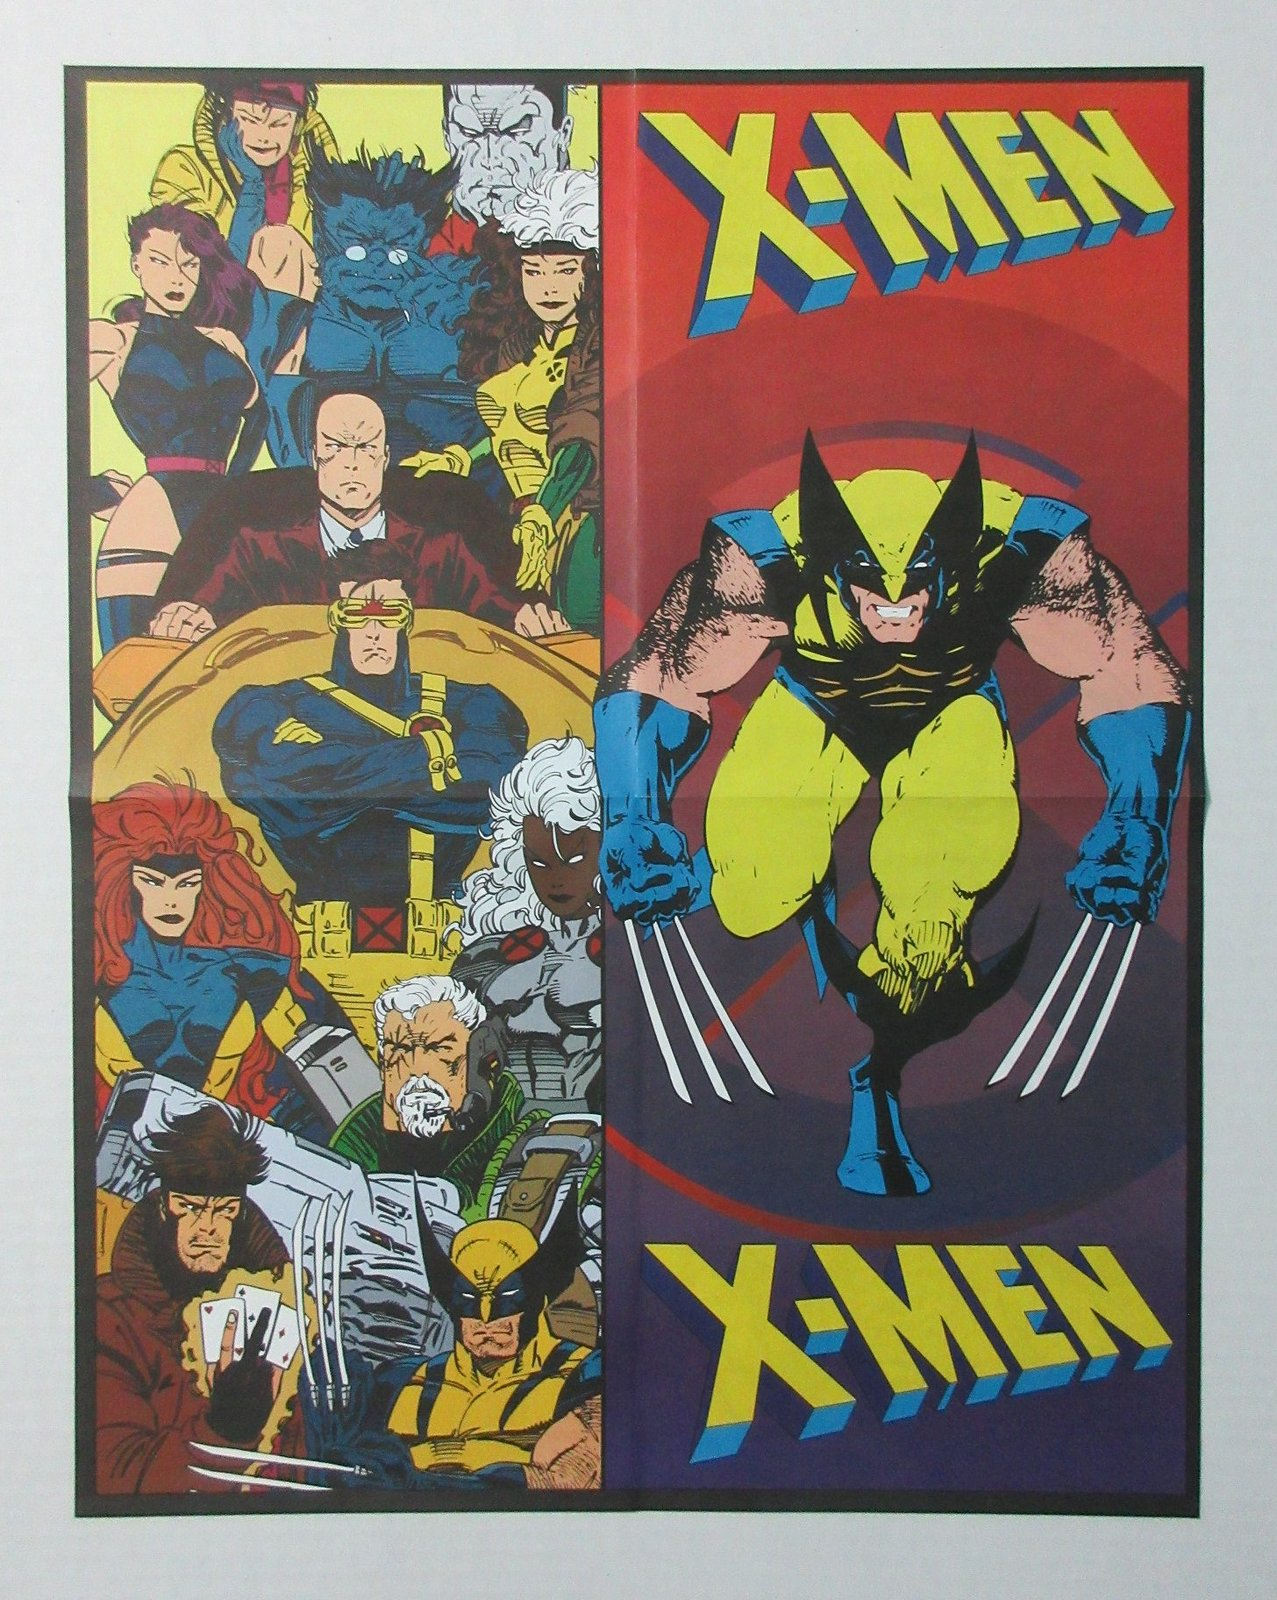 2 sided 1996 Marvel Comics Uncanny X-Men poster: Wolverine/Gambit/Psylocke/Rogue